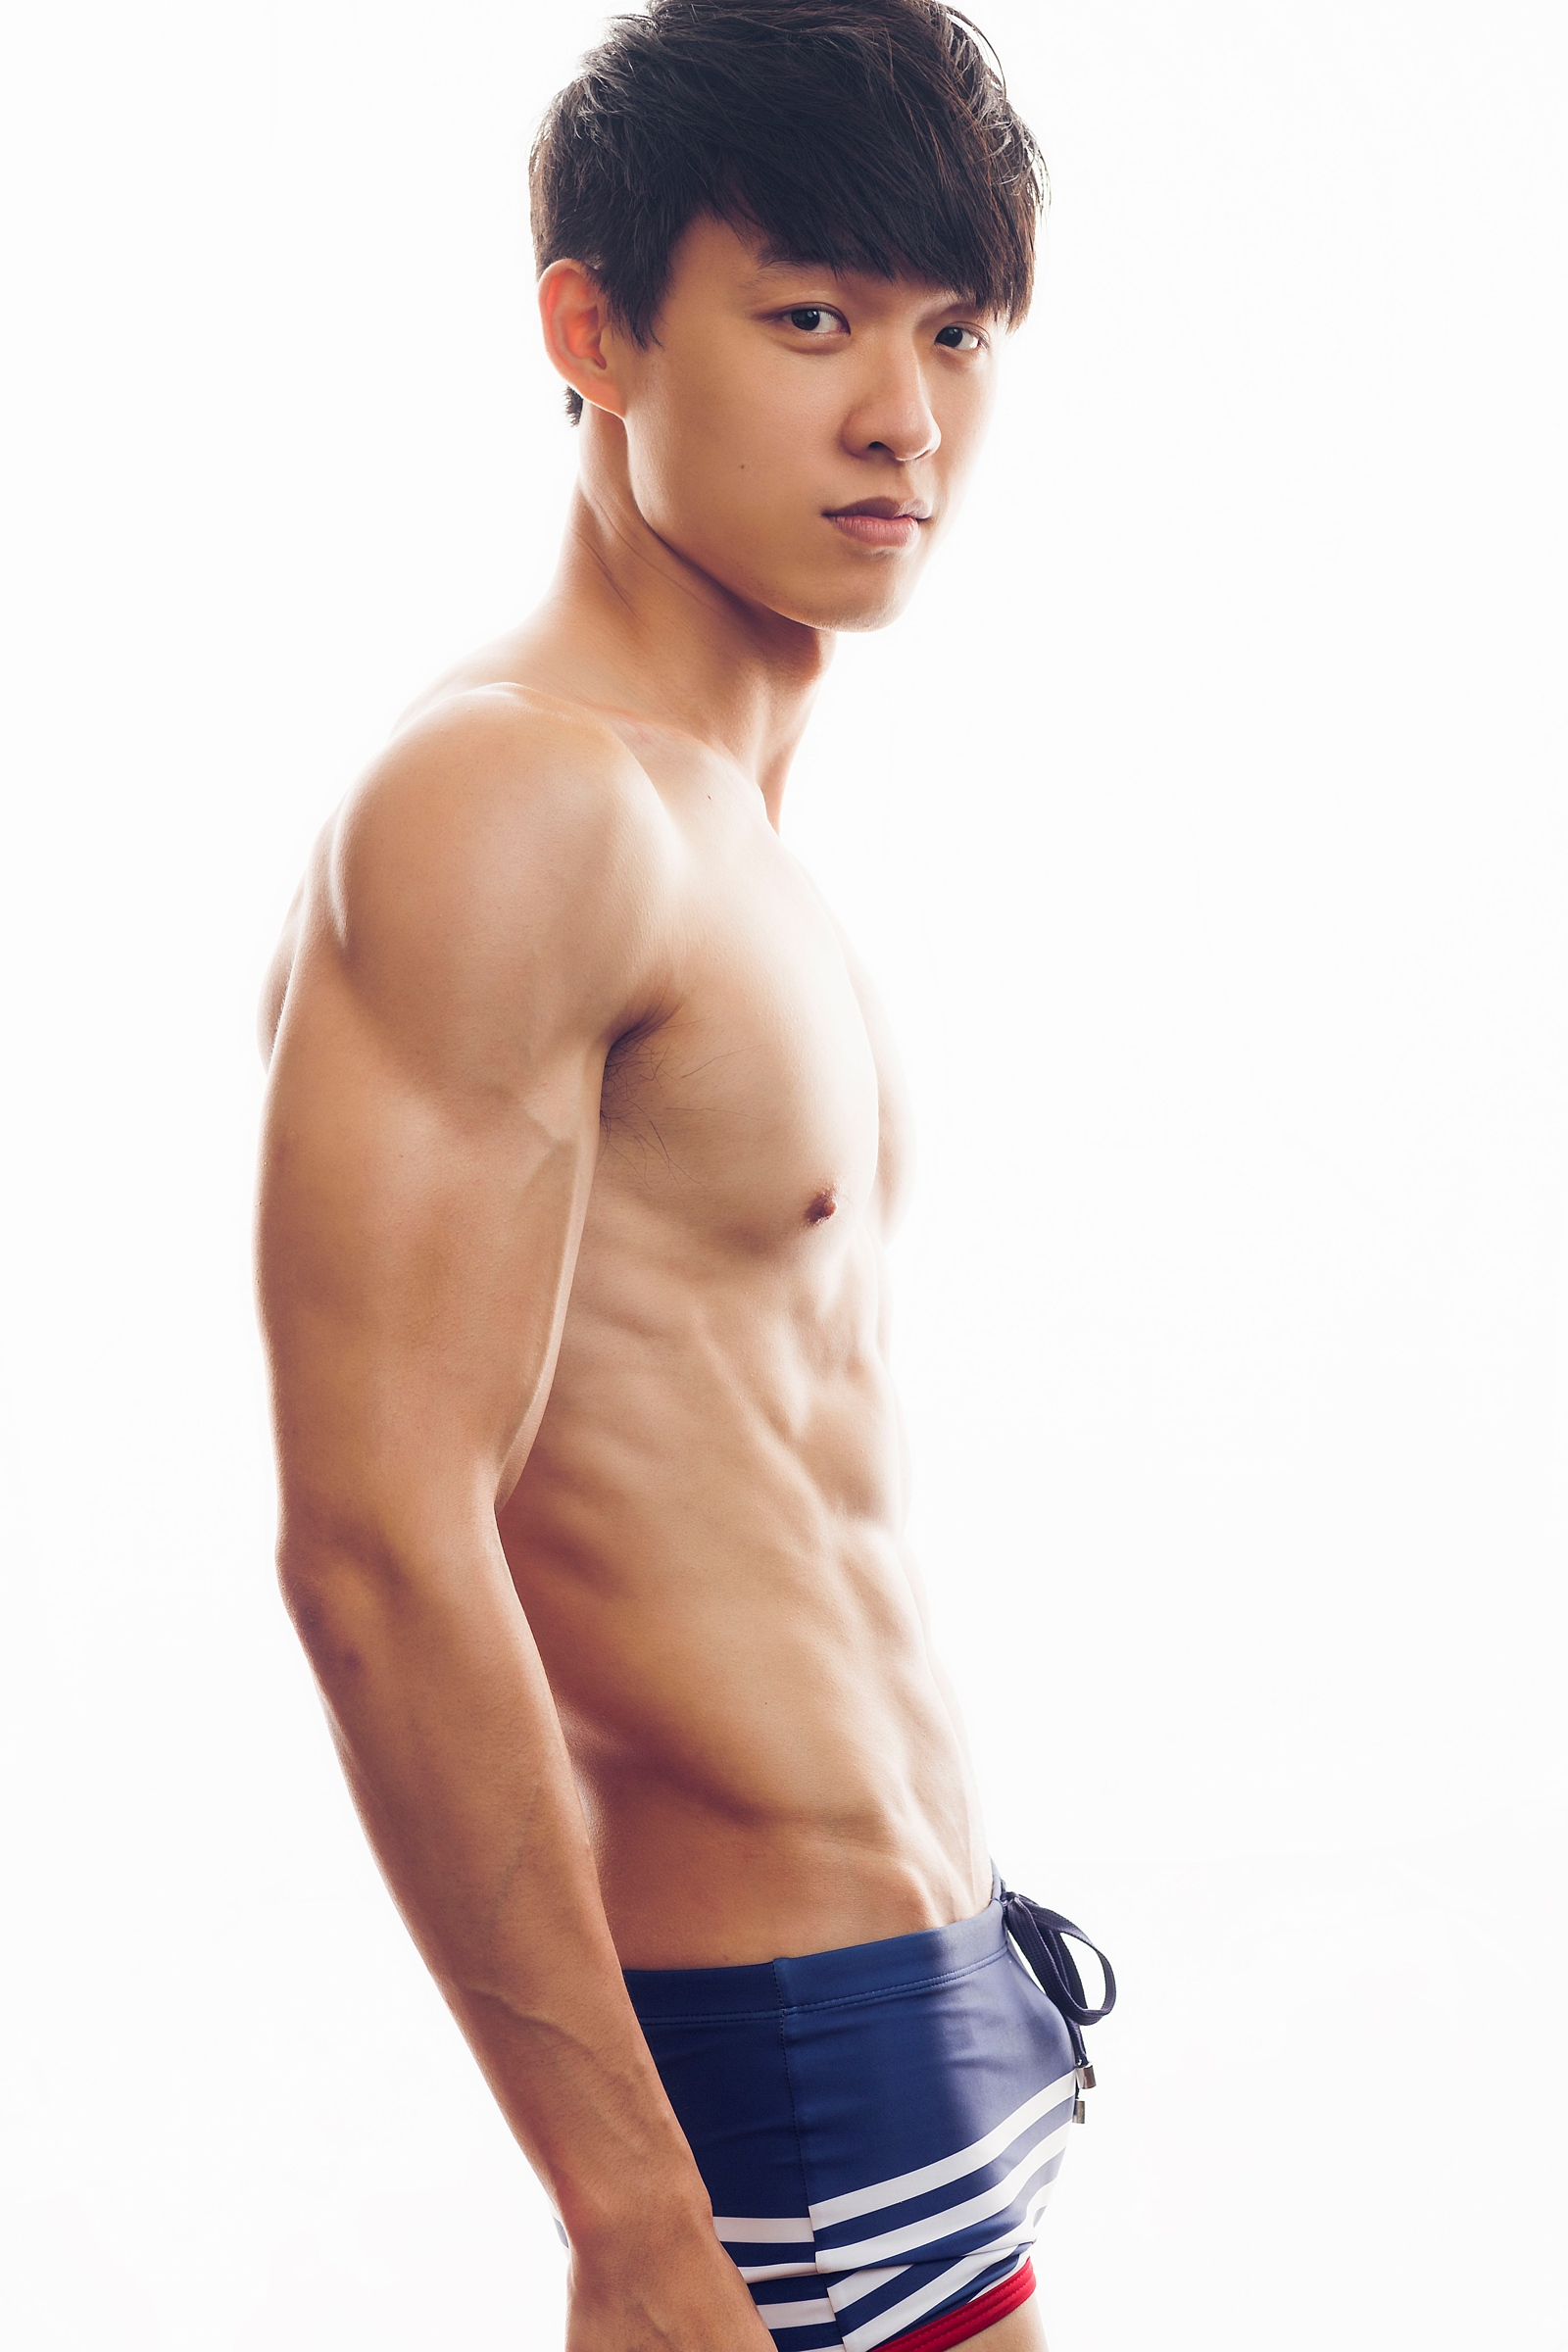 Asian men to men sex and photo of 6